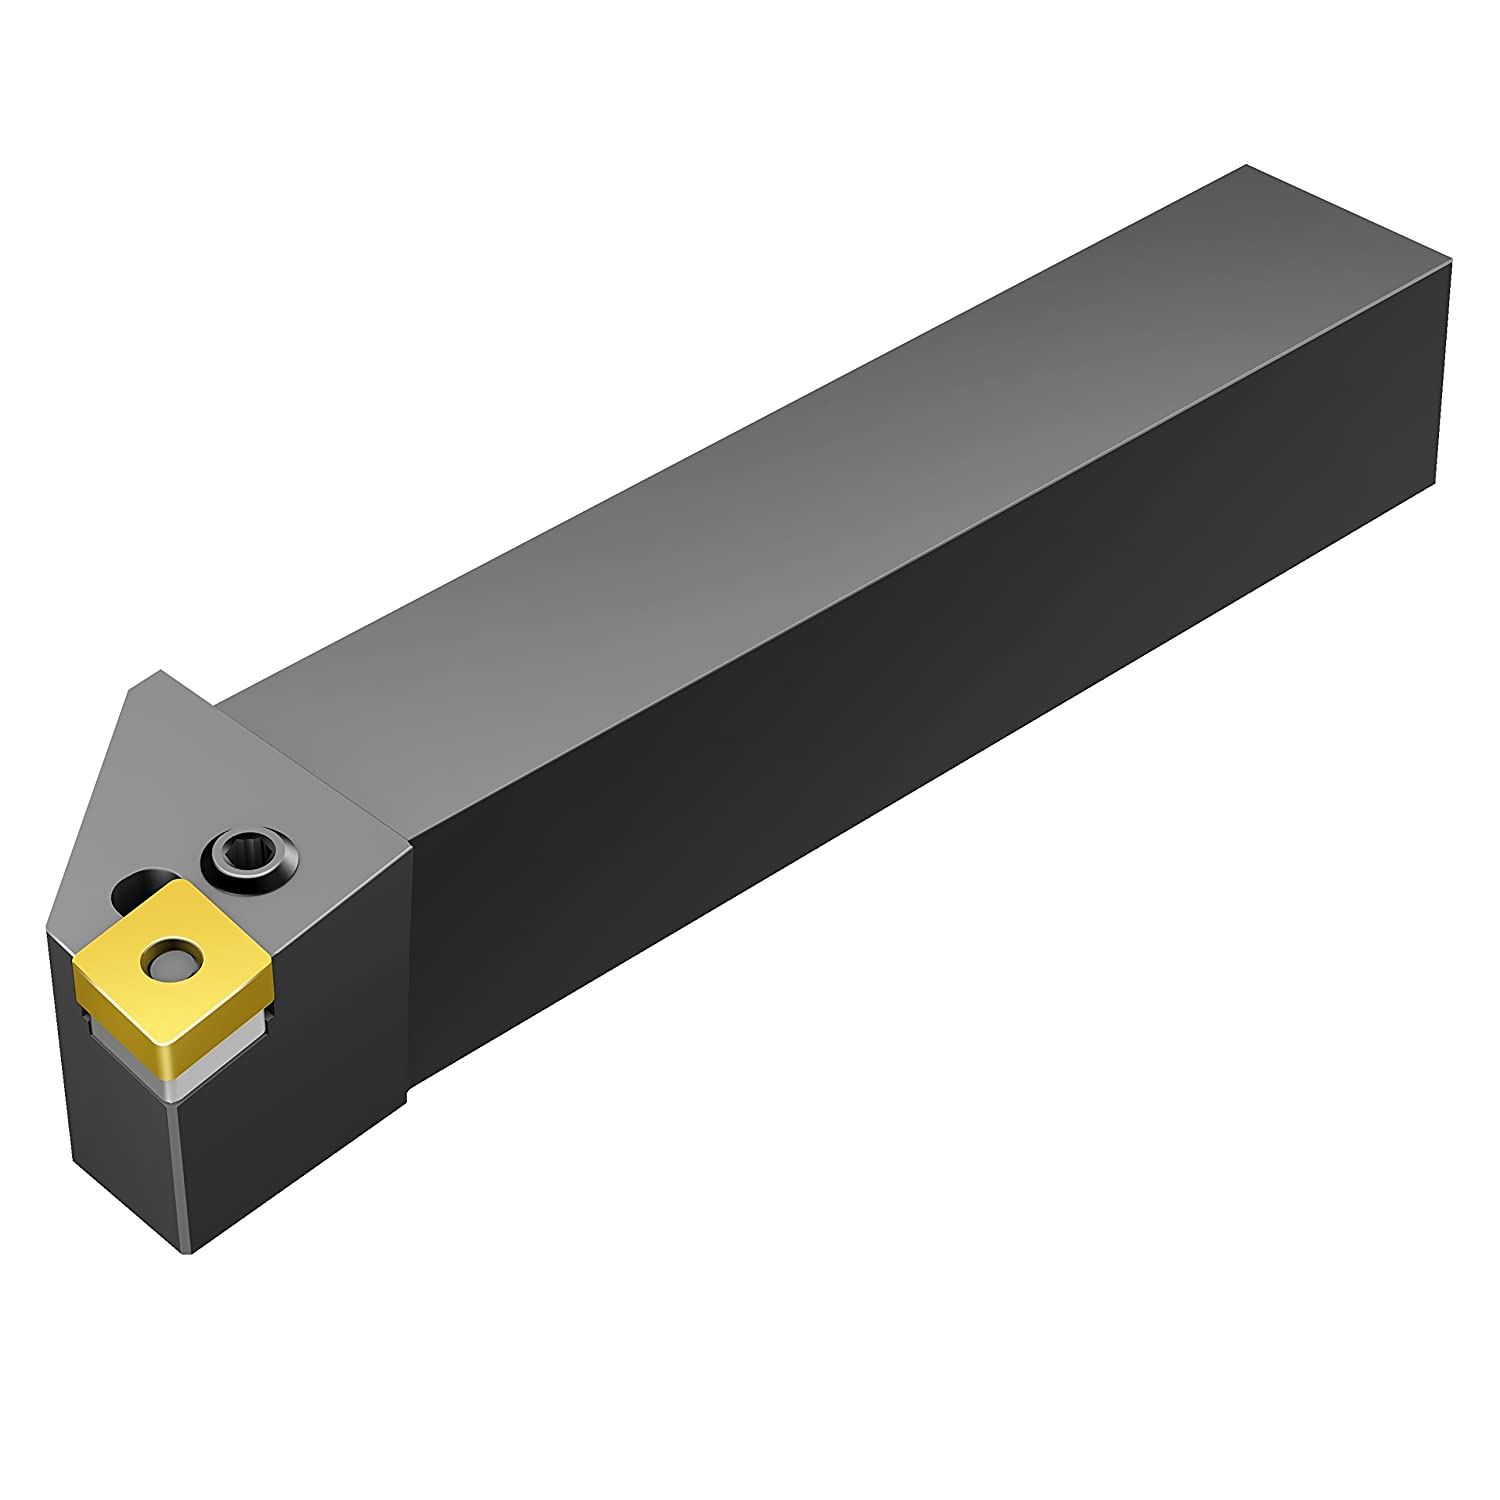 Steel External 170mm Length x 32mm Width Right Hand CNMG 432 Insert Size Sandvik Coromant PCLNR 3225P 12 Normal Coolant Pressures Turning Insert Holder Rectangular Shank 32mm Width x 25mm Height Shank Lever Lock